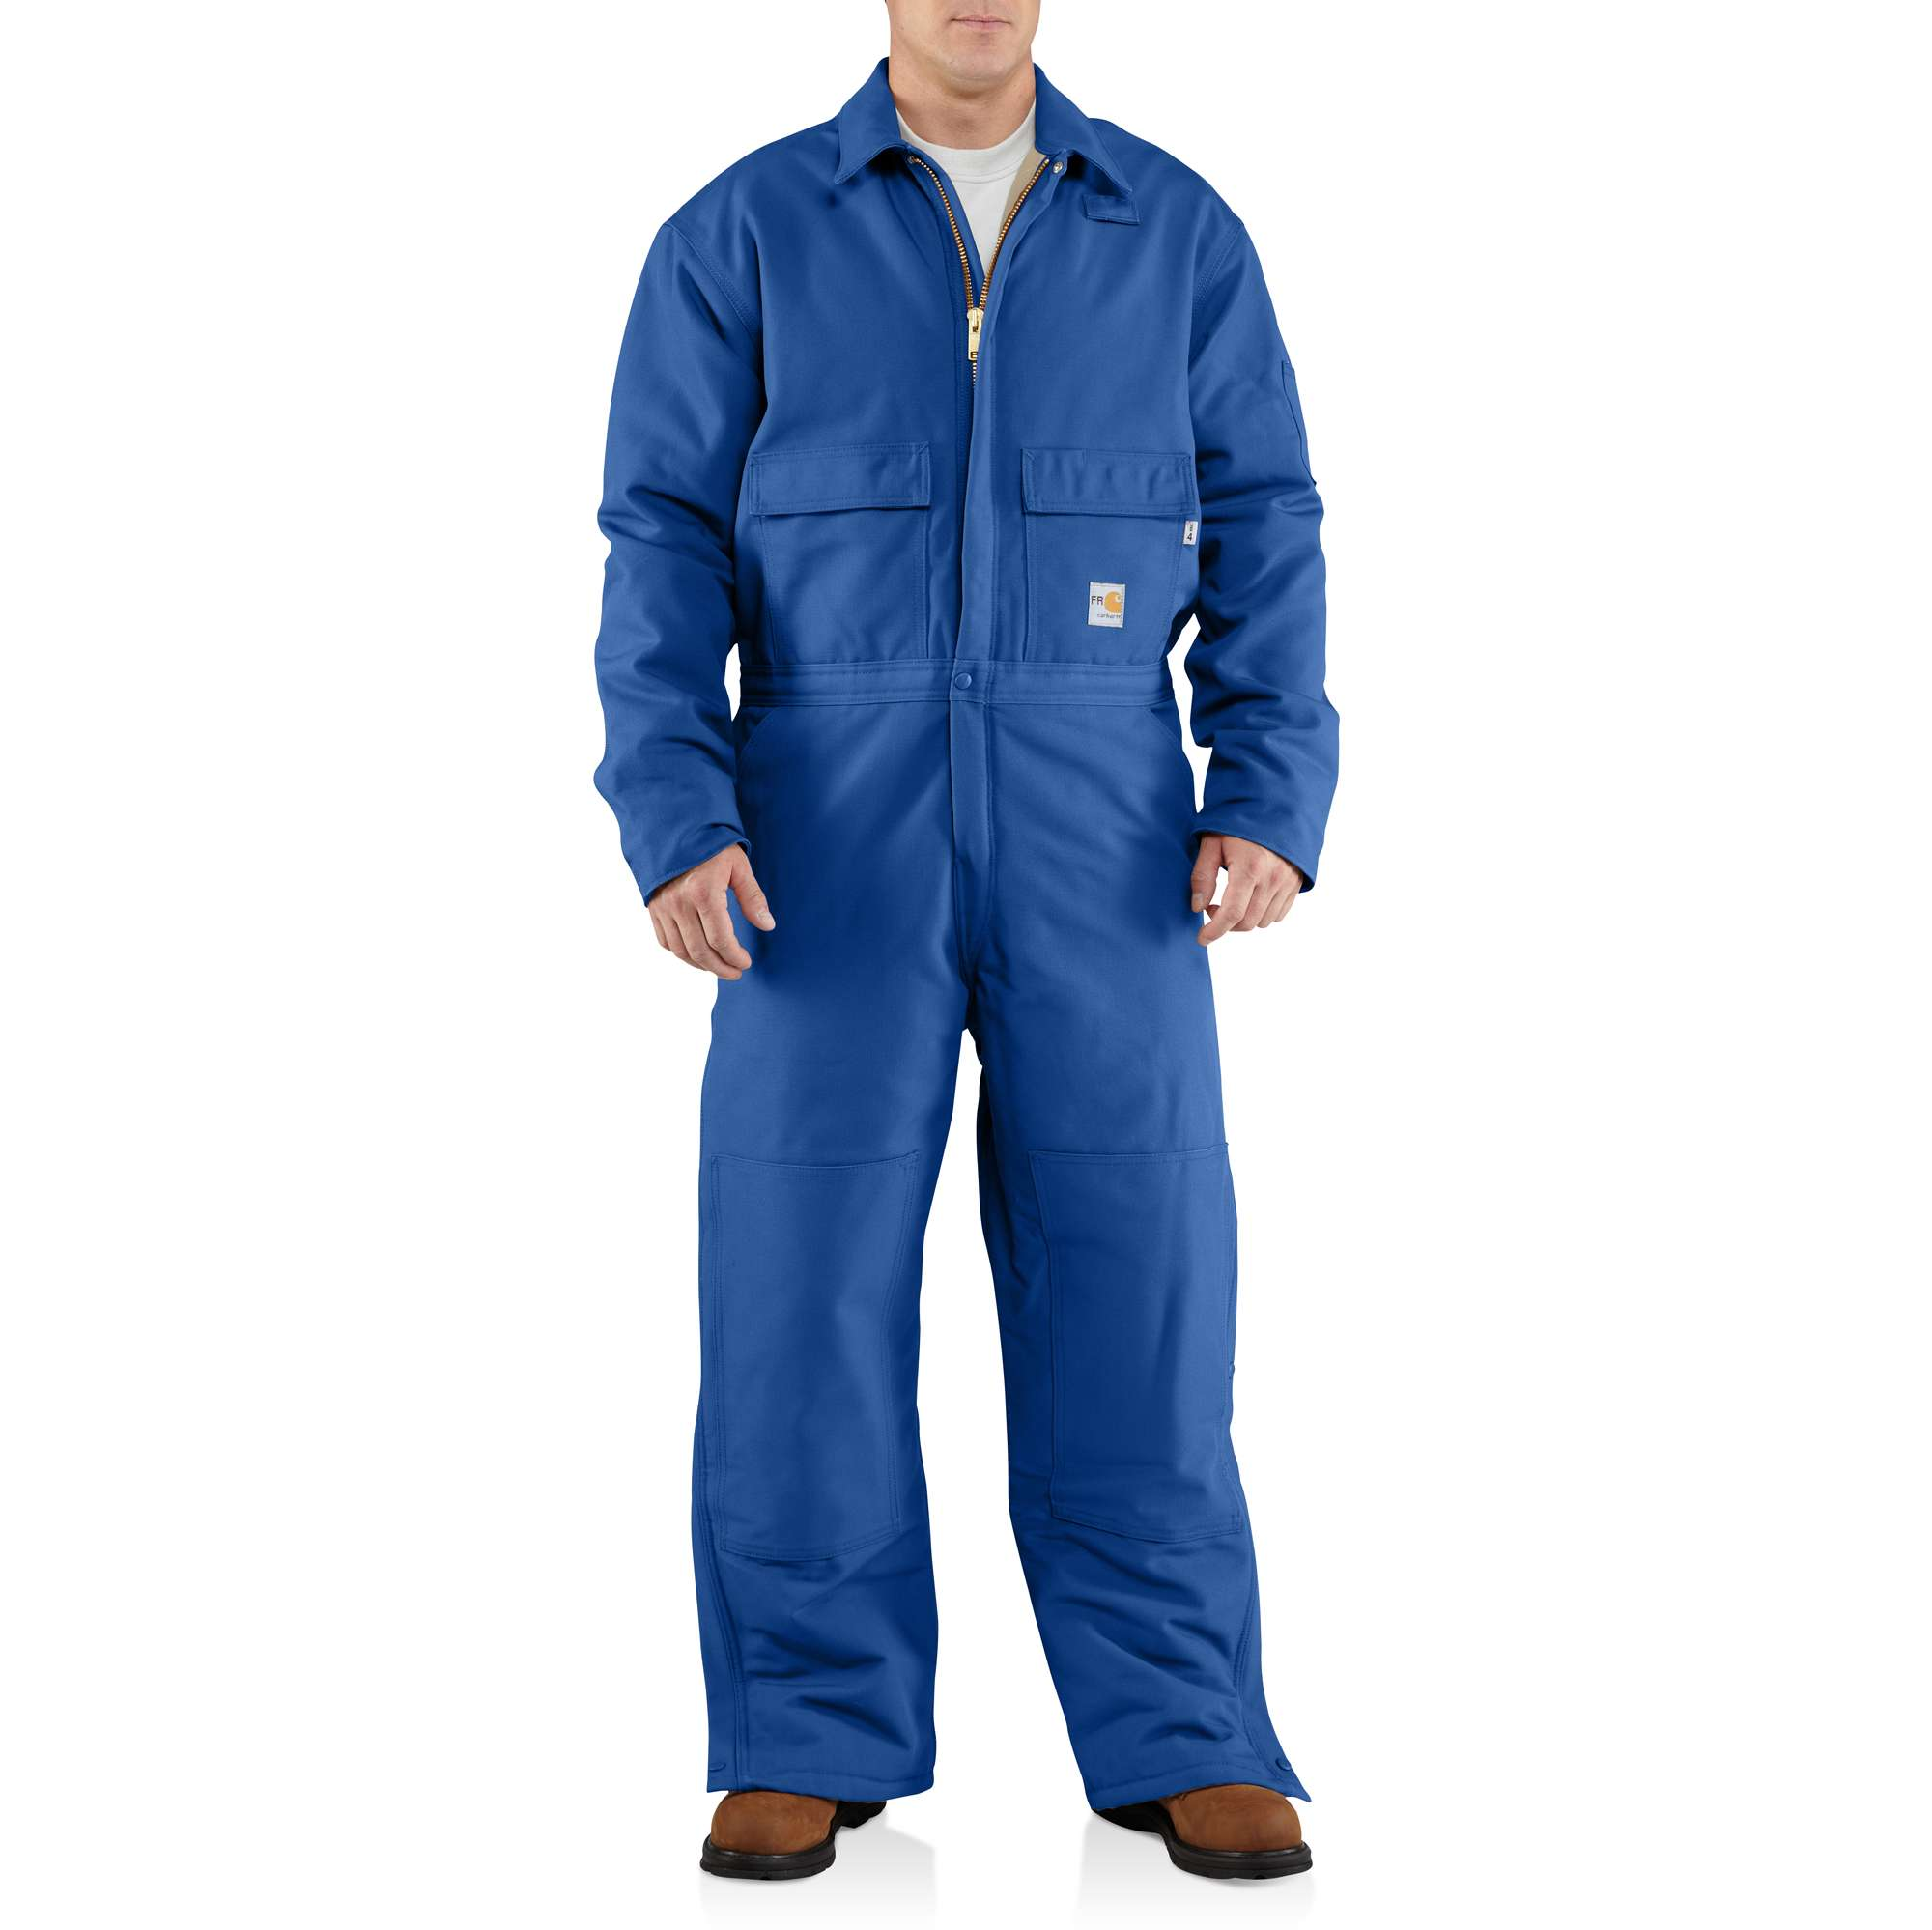 Carhartt Flame-resistant Duck Coverall/quilt-lined Royal 2XLTL